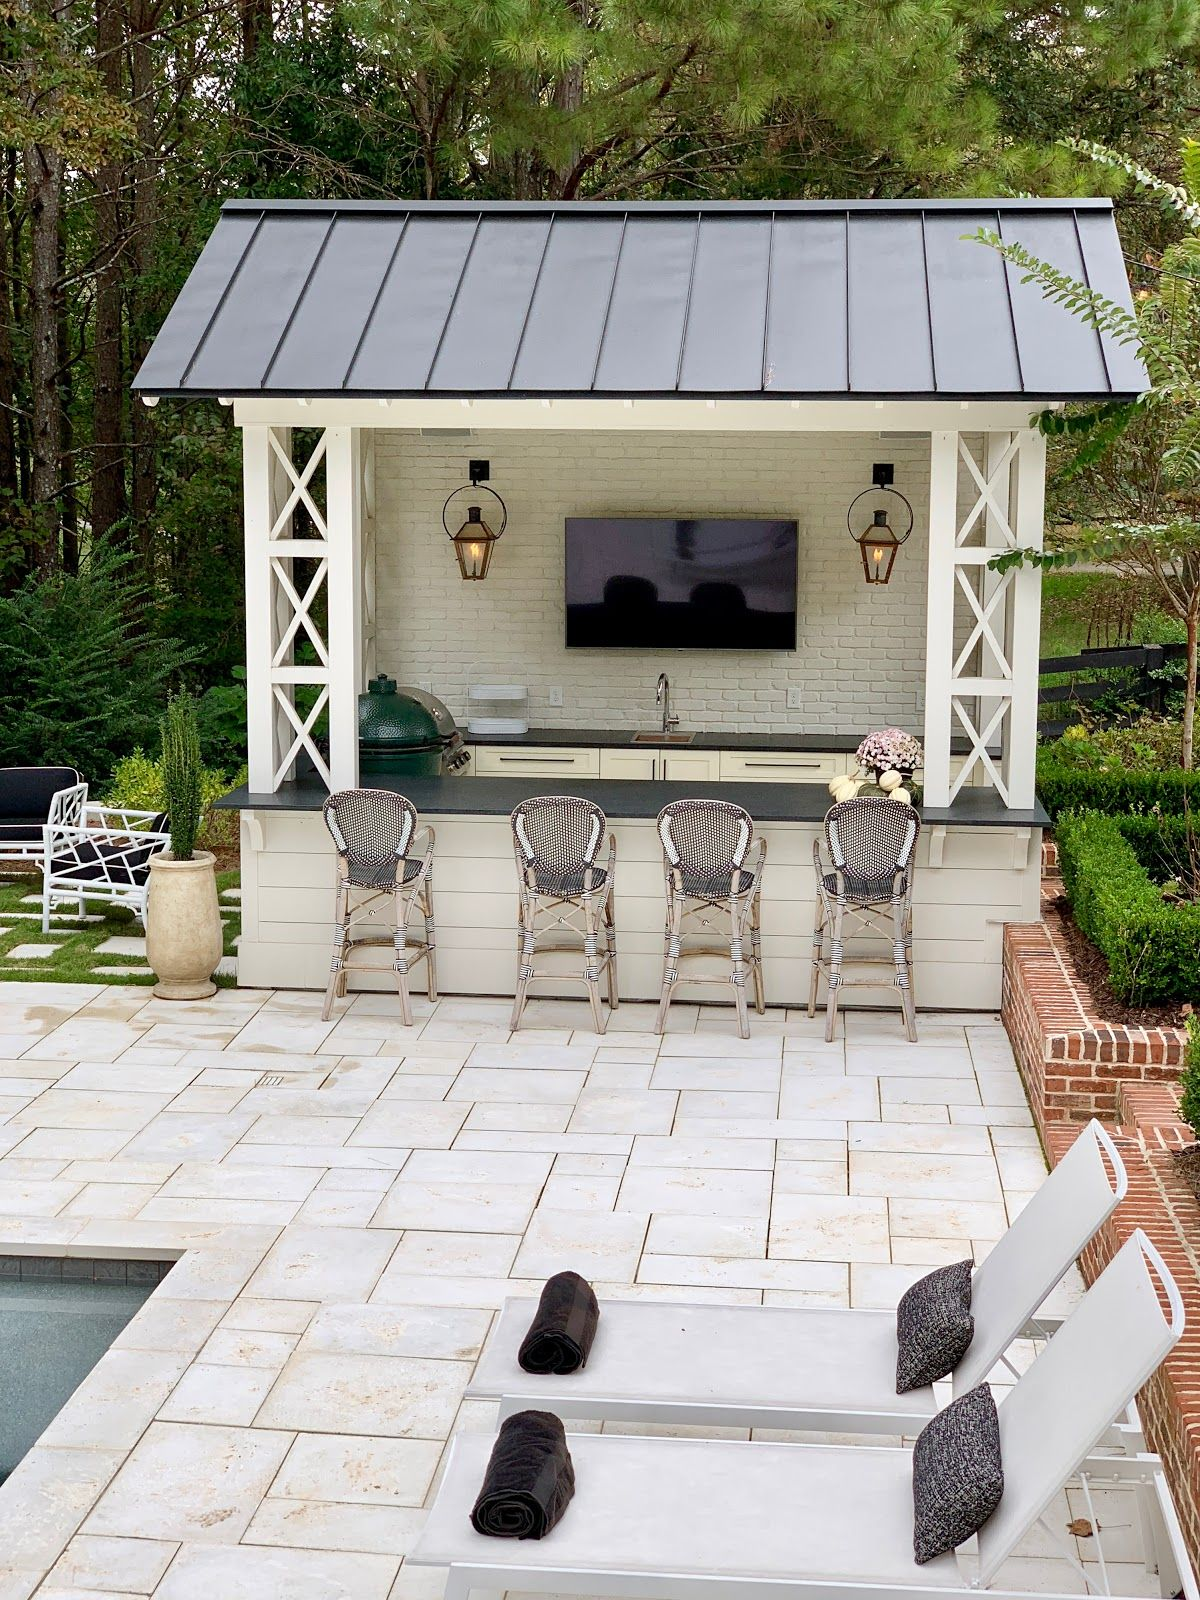 A Colorful Home Tour Pool House Designs Backyard Patio Designs Pool Houses Backyard ideas with guest house